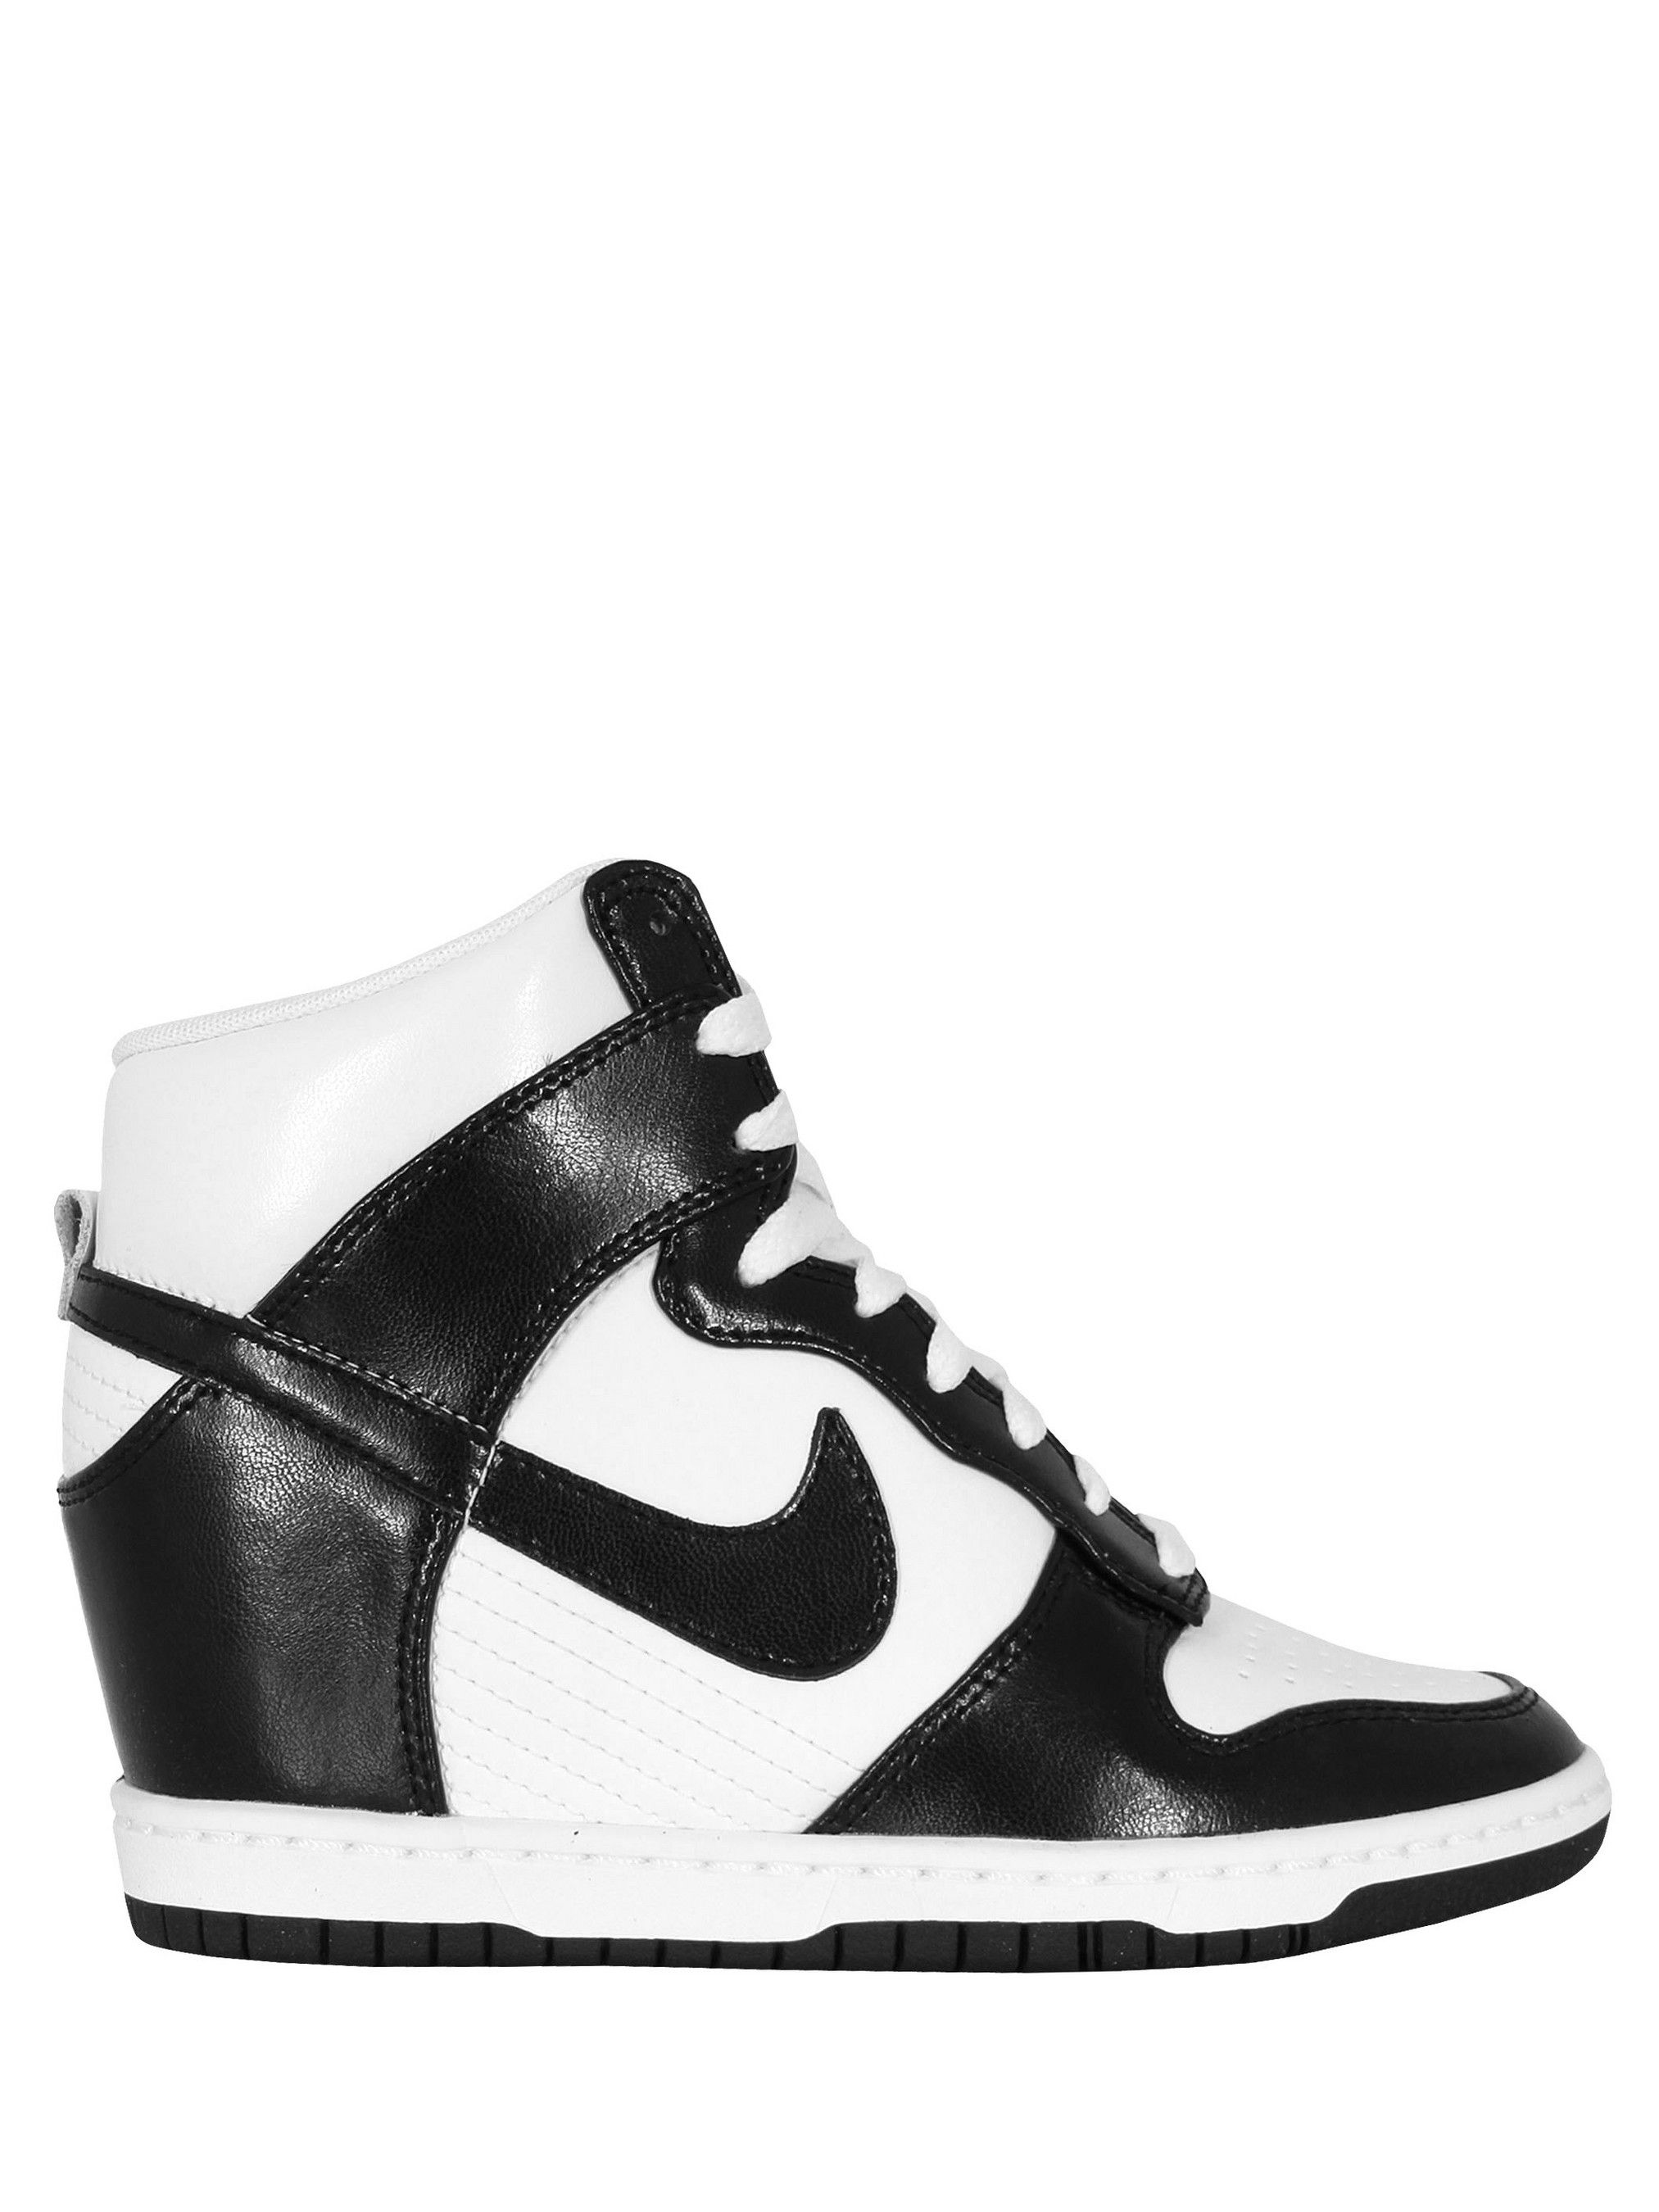 size 40 a2583 1a0a0 Nike – Dunk Sky Hi, womens black and white leather trainers with a  concealed 6.5cm wedge heel and classic Nike  swoosh . The trainers also  feature a padded ...